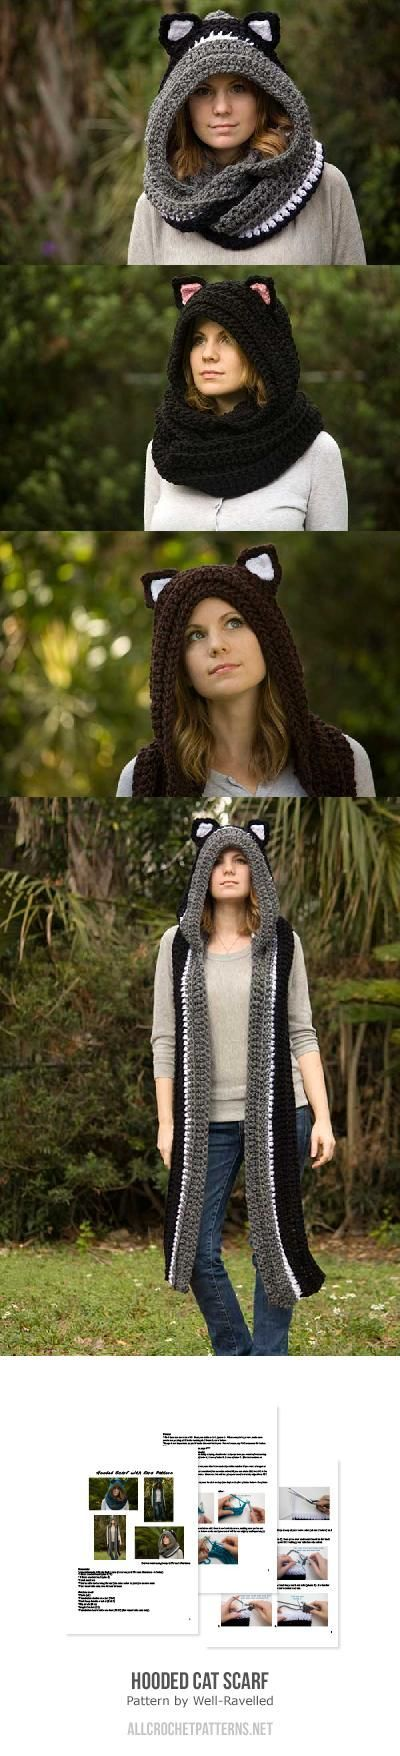 Hooded cat scarf crochet pattern by Well-Ravelled